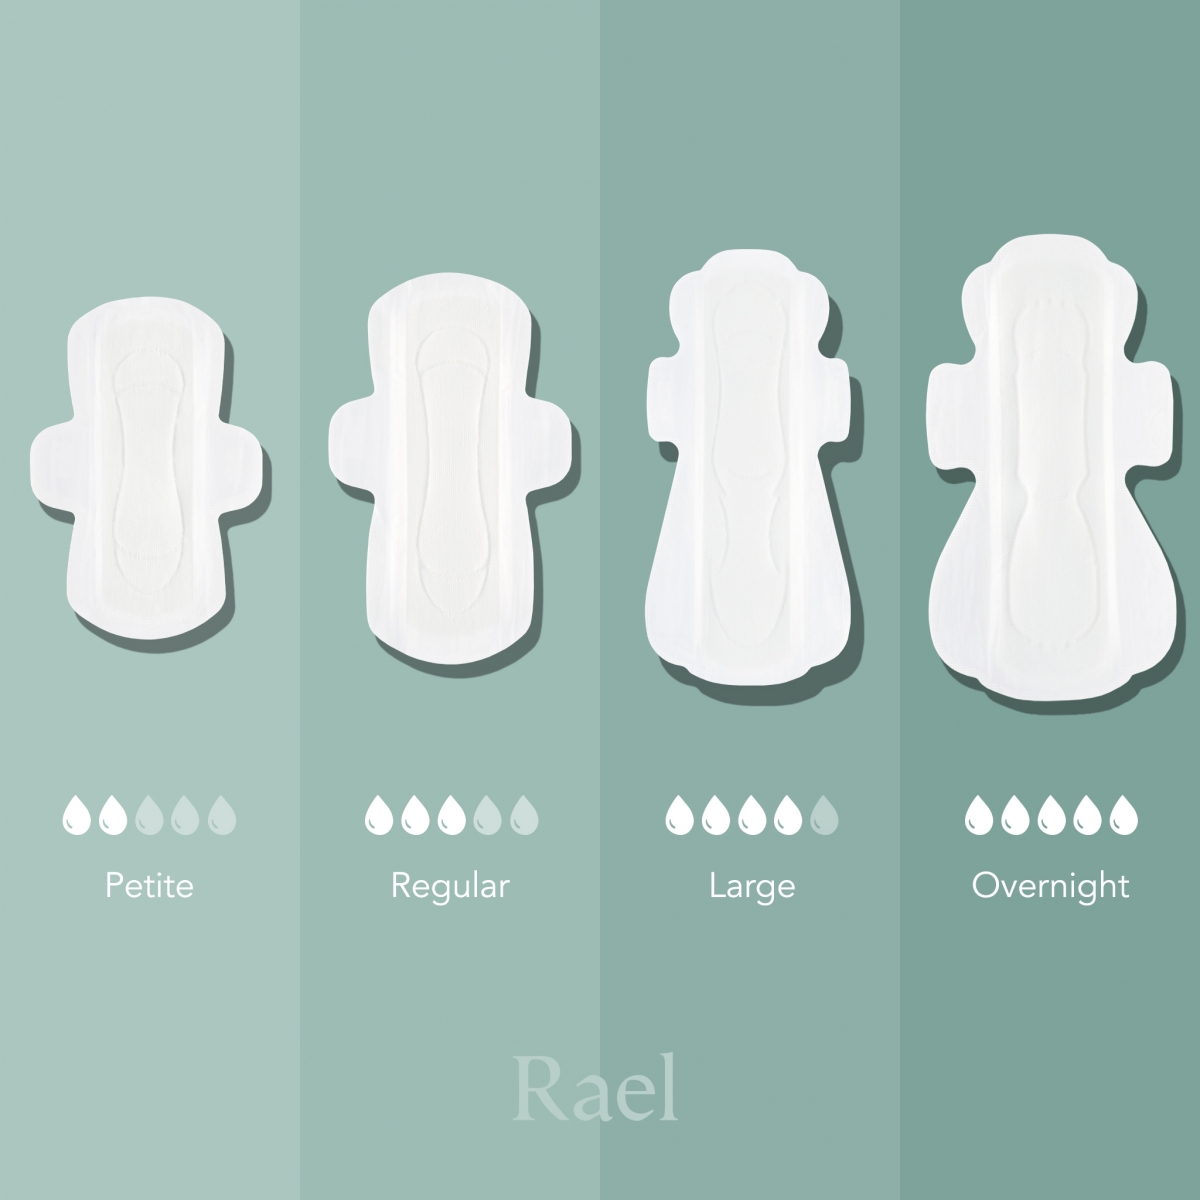 Rael sanitary pads in different sizes